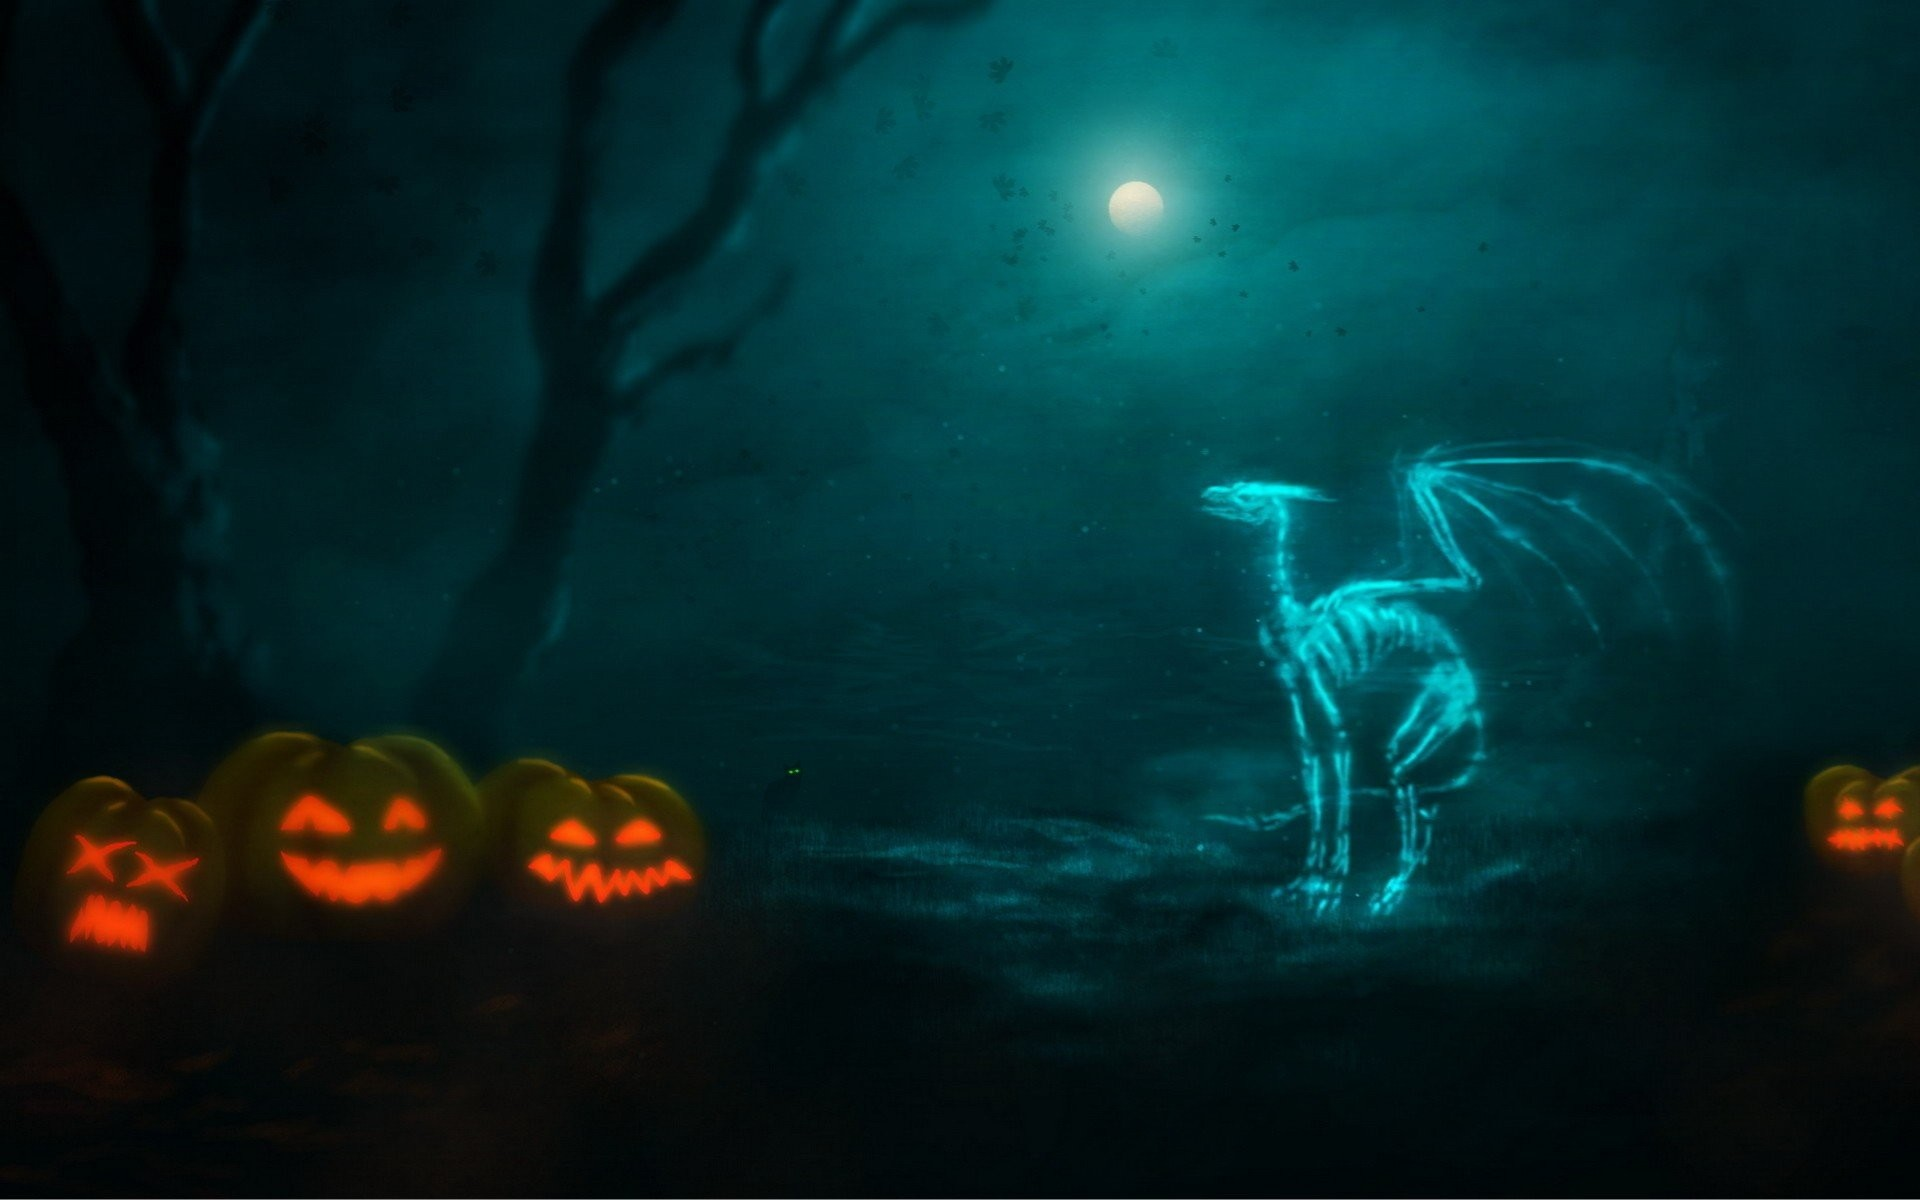 1920x1200 horse halloween wallpaper ; horse-skeleton-wallpapers-halloween-wallpaper -images